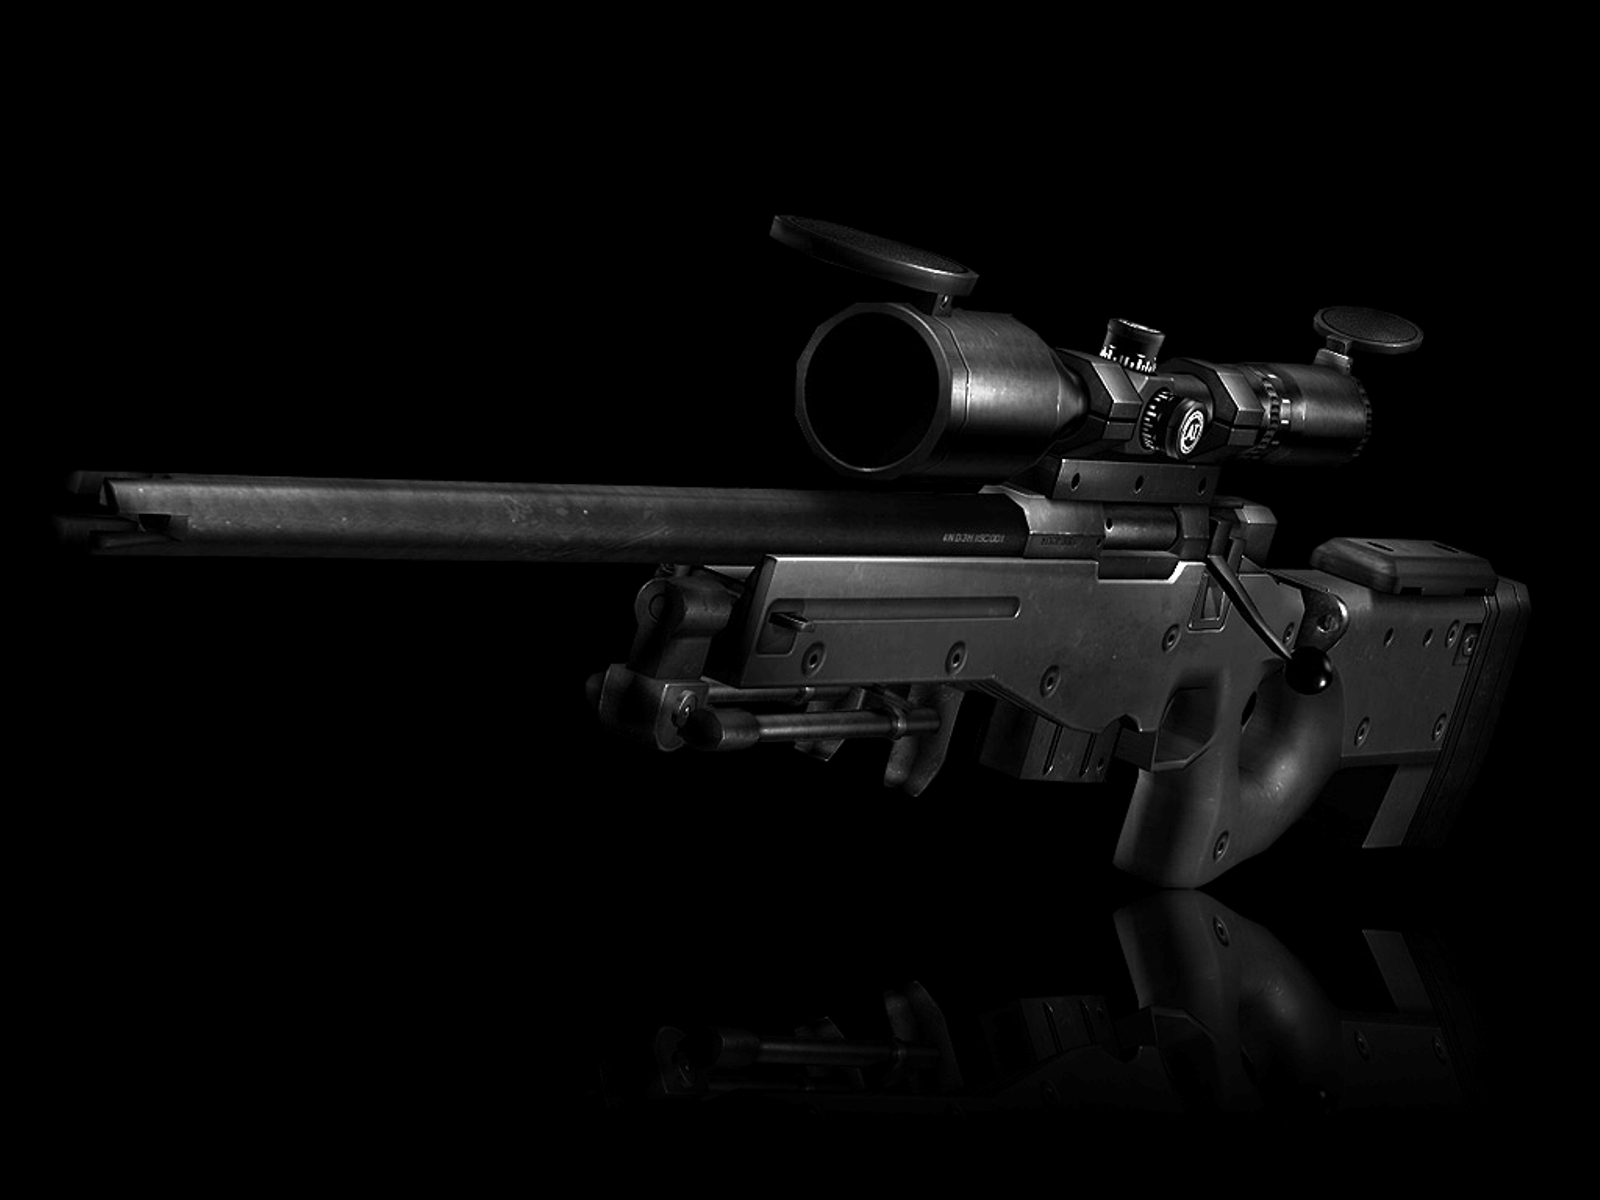 Weapons - Sniper Rifle Wallpaper